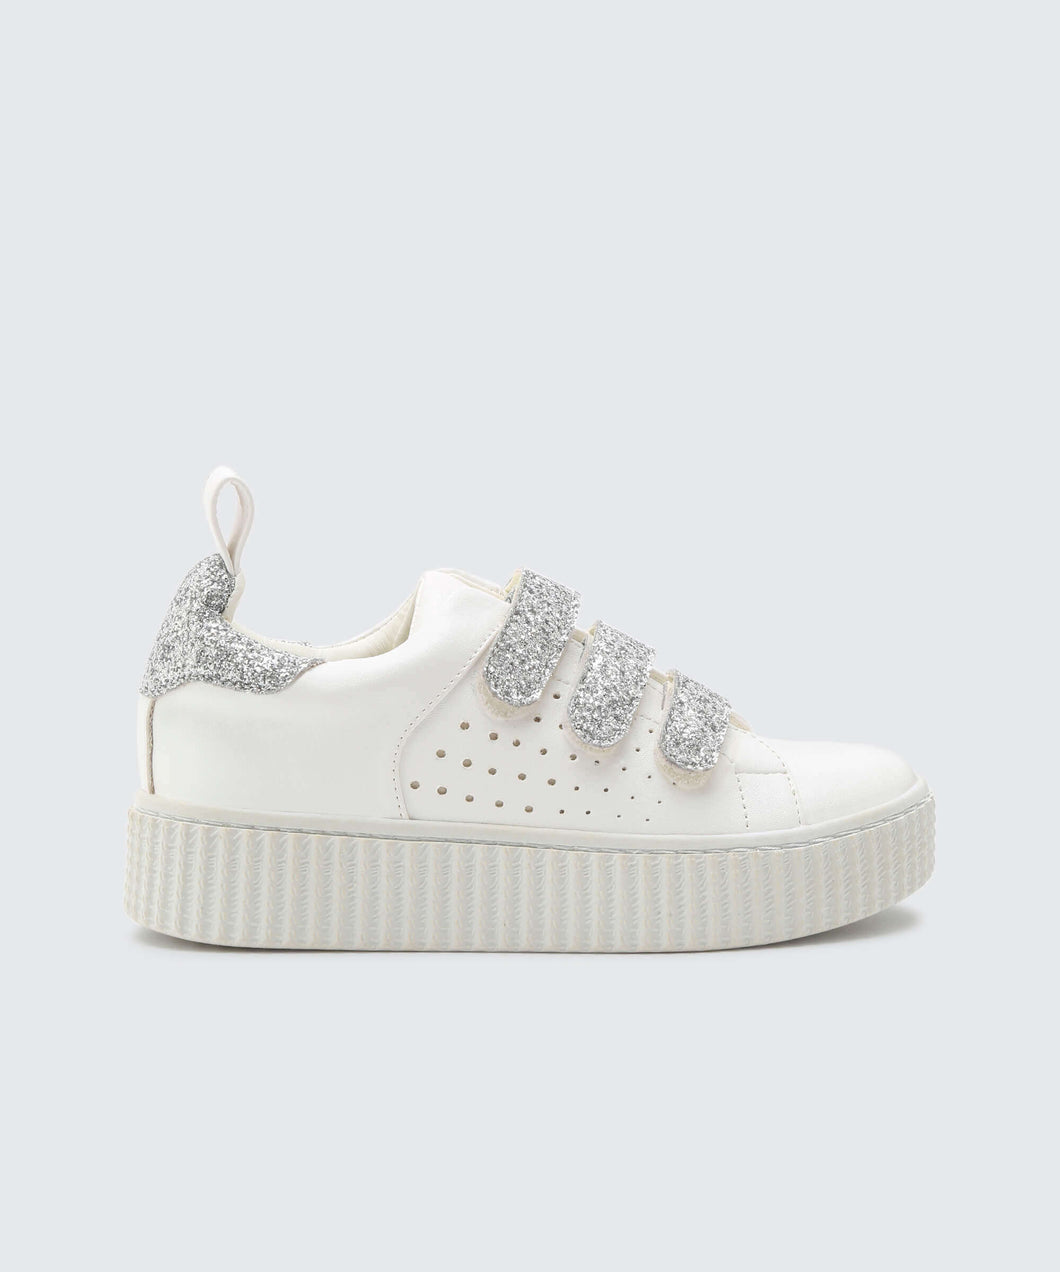 CAELIN SNEAKERS WHITE -   Dolce Vita